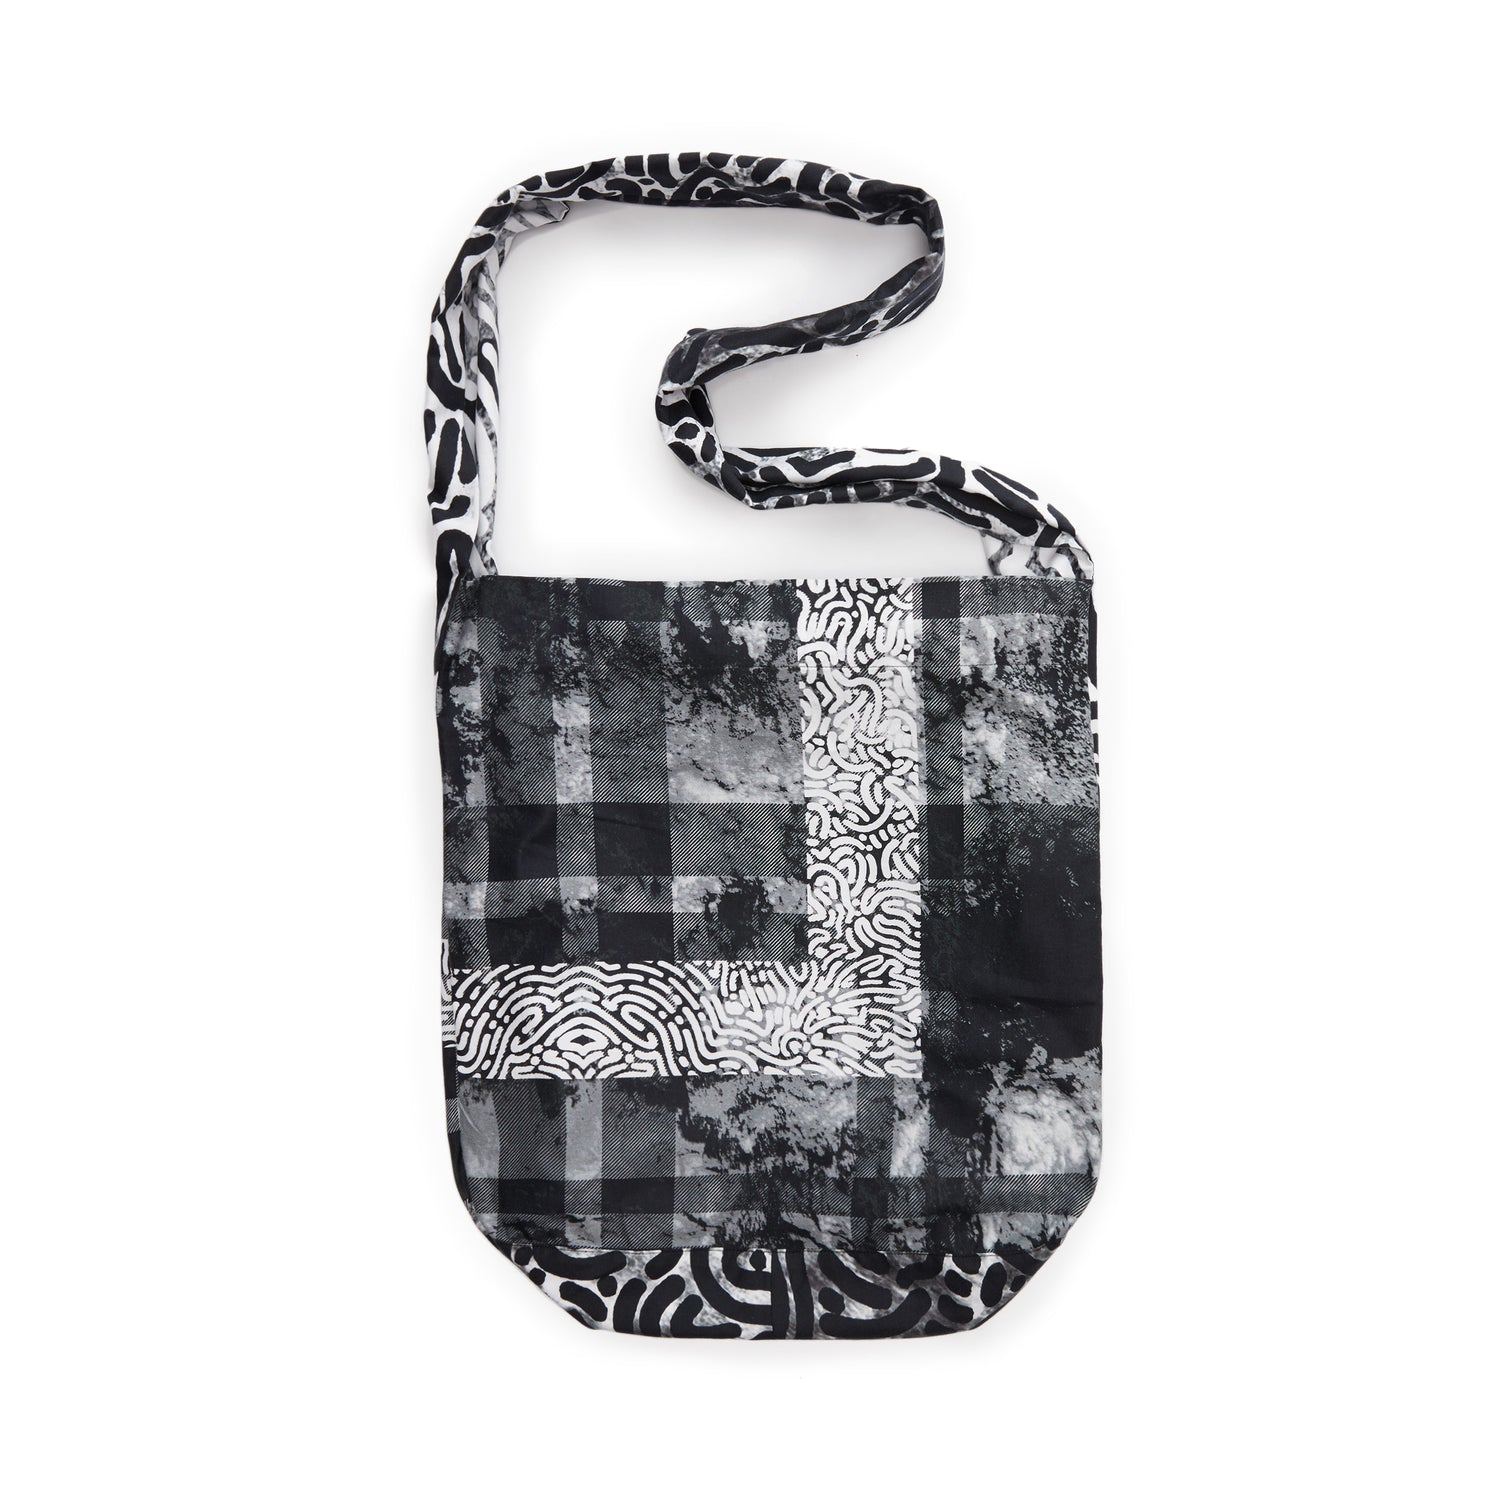 Stalagmite Frame Plaid Shoulder Bag